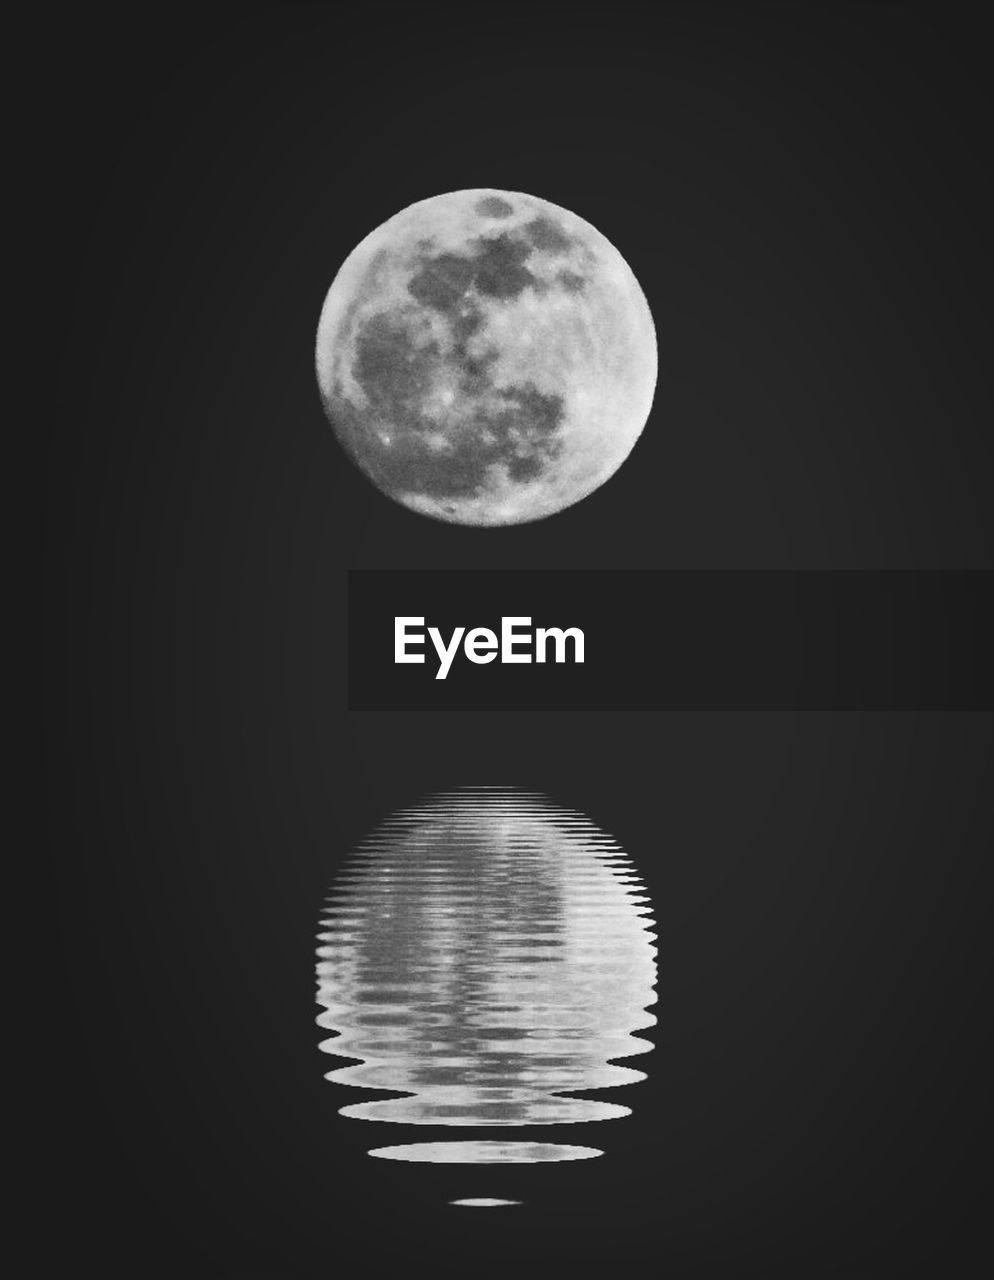 moon, circle, full moon, night, moon surface, planetary moon, astronomy, reflection, nature, beauty in nature, tranquil scene, space exploration, no people, tranquility, water, scenics, outdoors, sky, clear sky, space